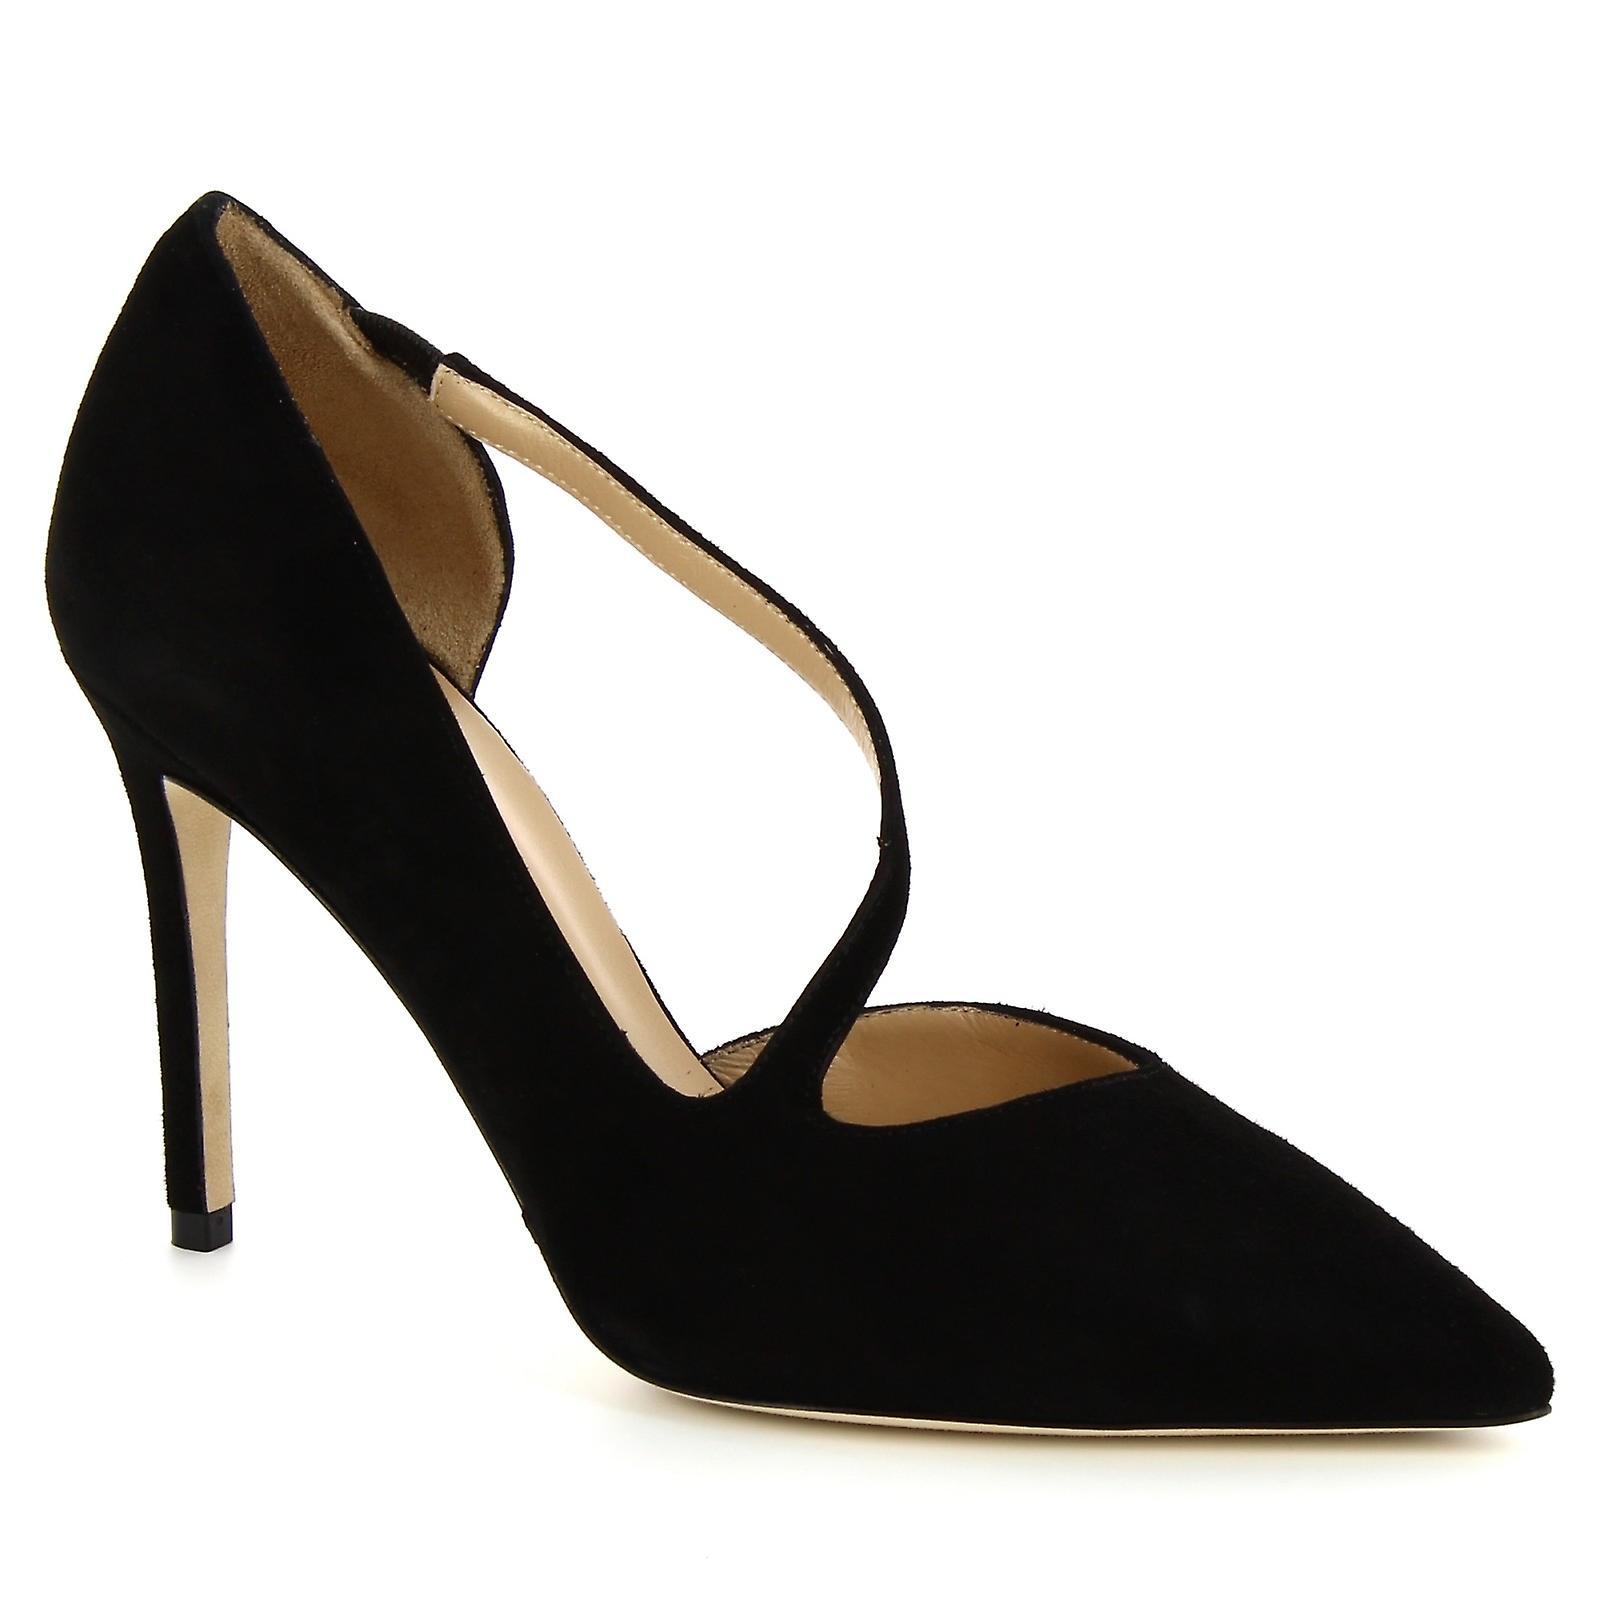 Leonardo Shoes Women's handmade classic pumps shoes in black suede leather I22WW